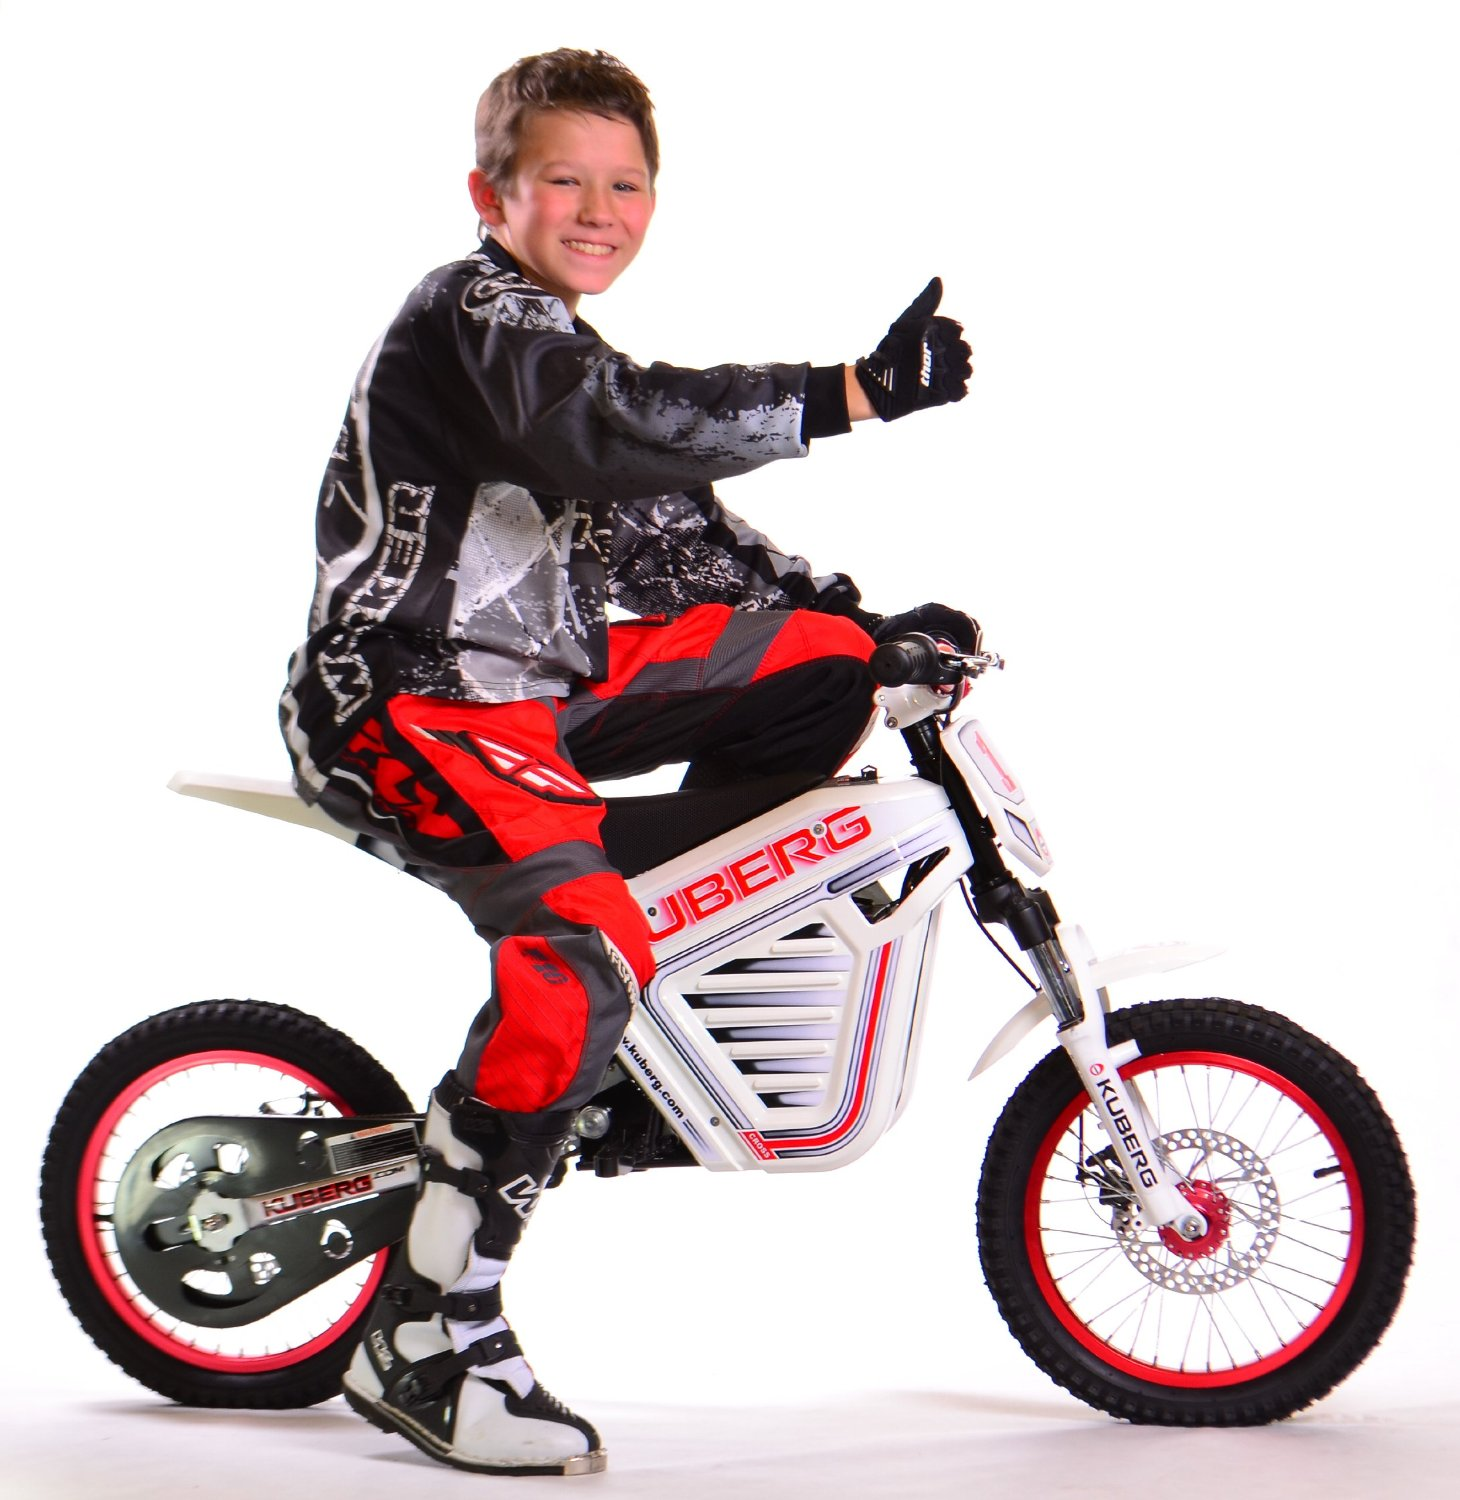 However, any kids Motocross racing events require the jersey and pants. Plus, you'll also need name and number plate backgrounds which is a sure-fire bet to .